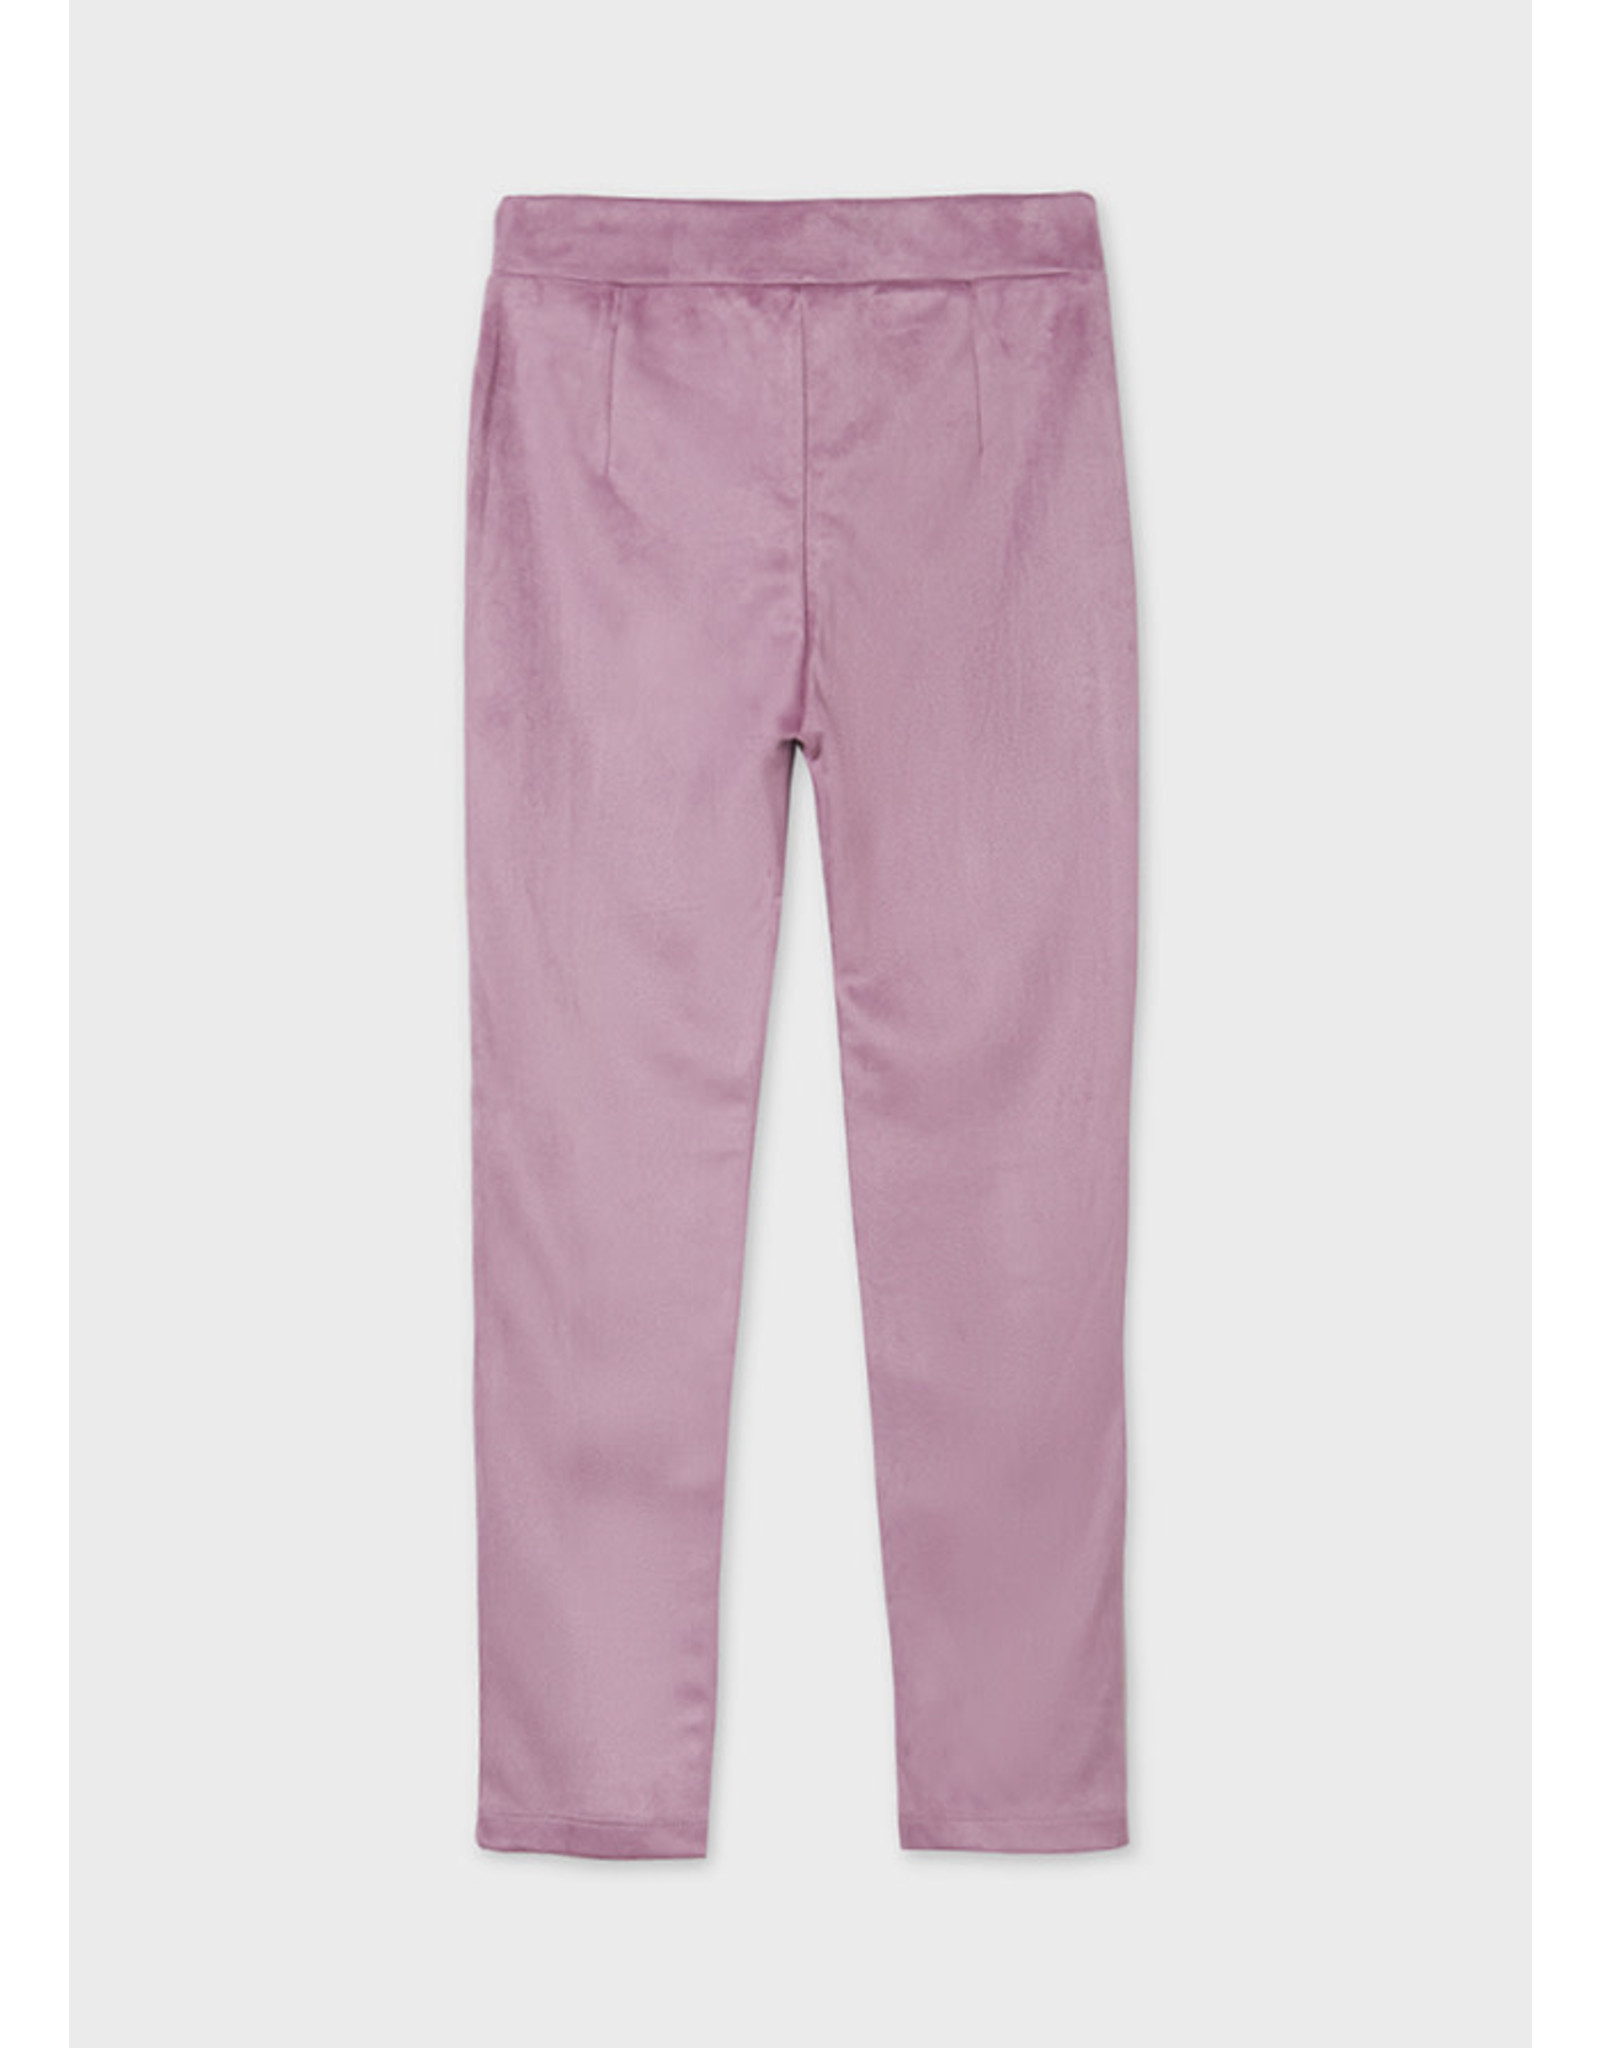 Mayoral Orchid Suede Long Pants